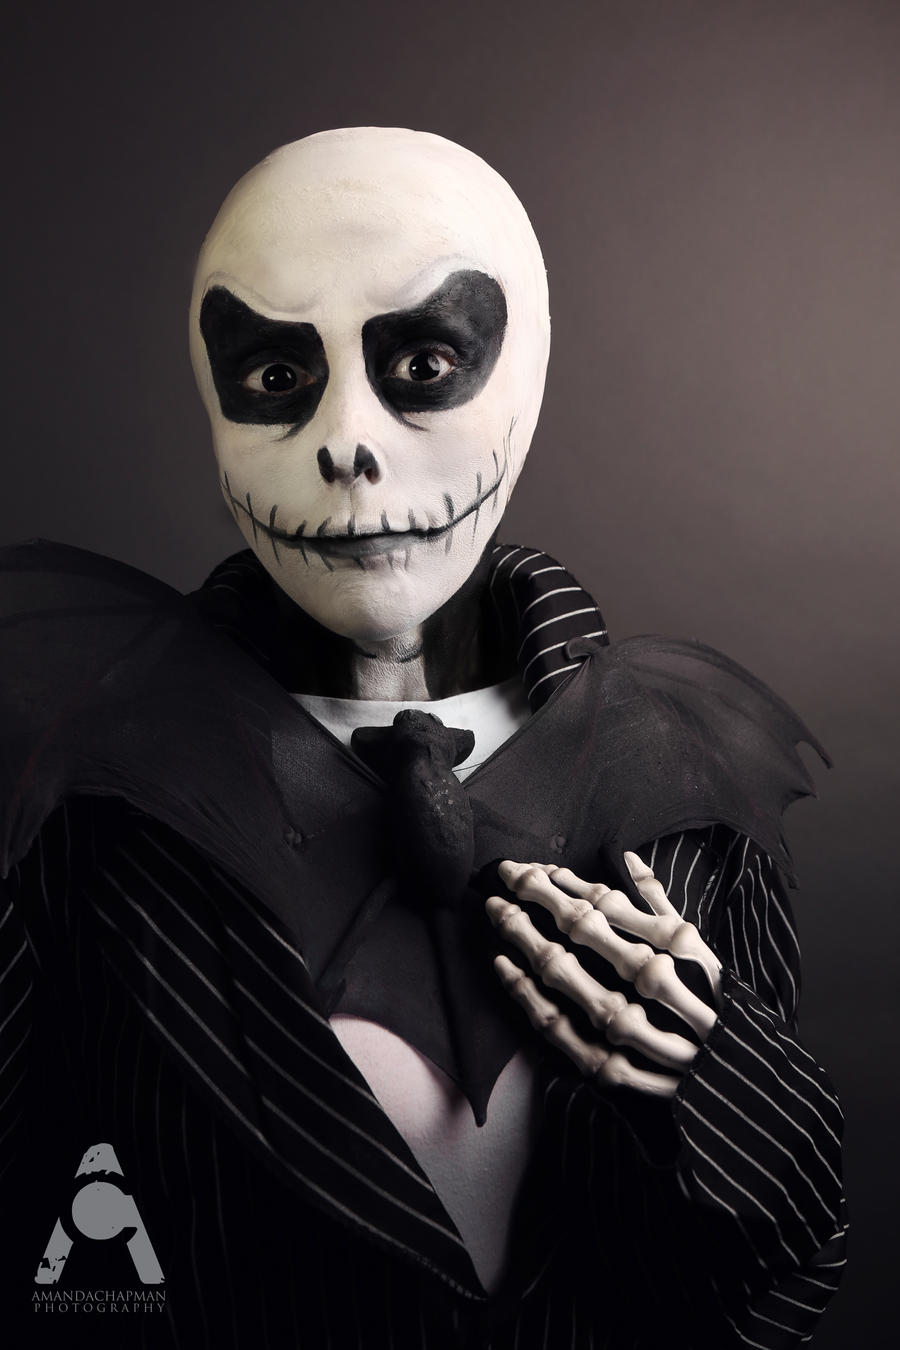 [Self] we are working on our version of Jack Skellington ...